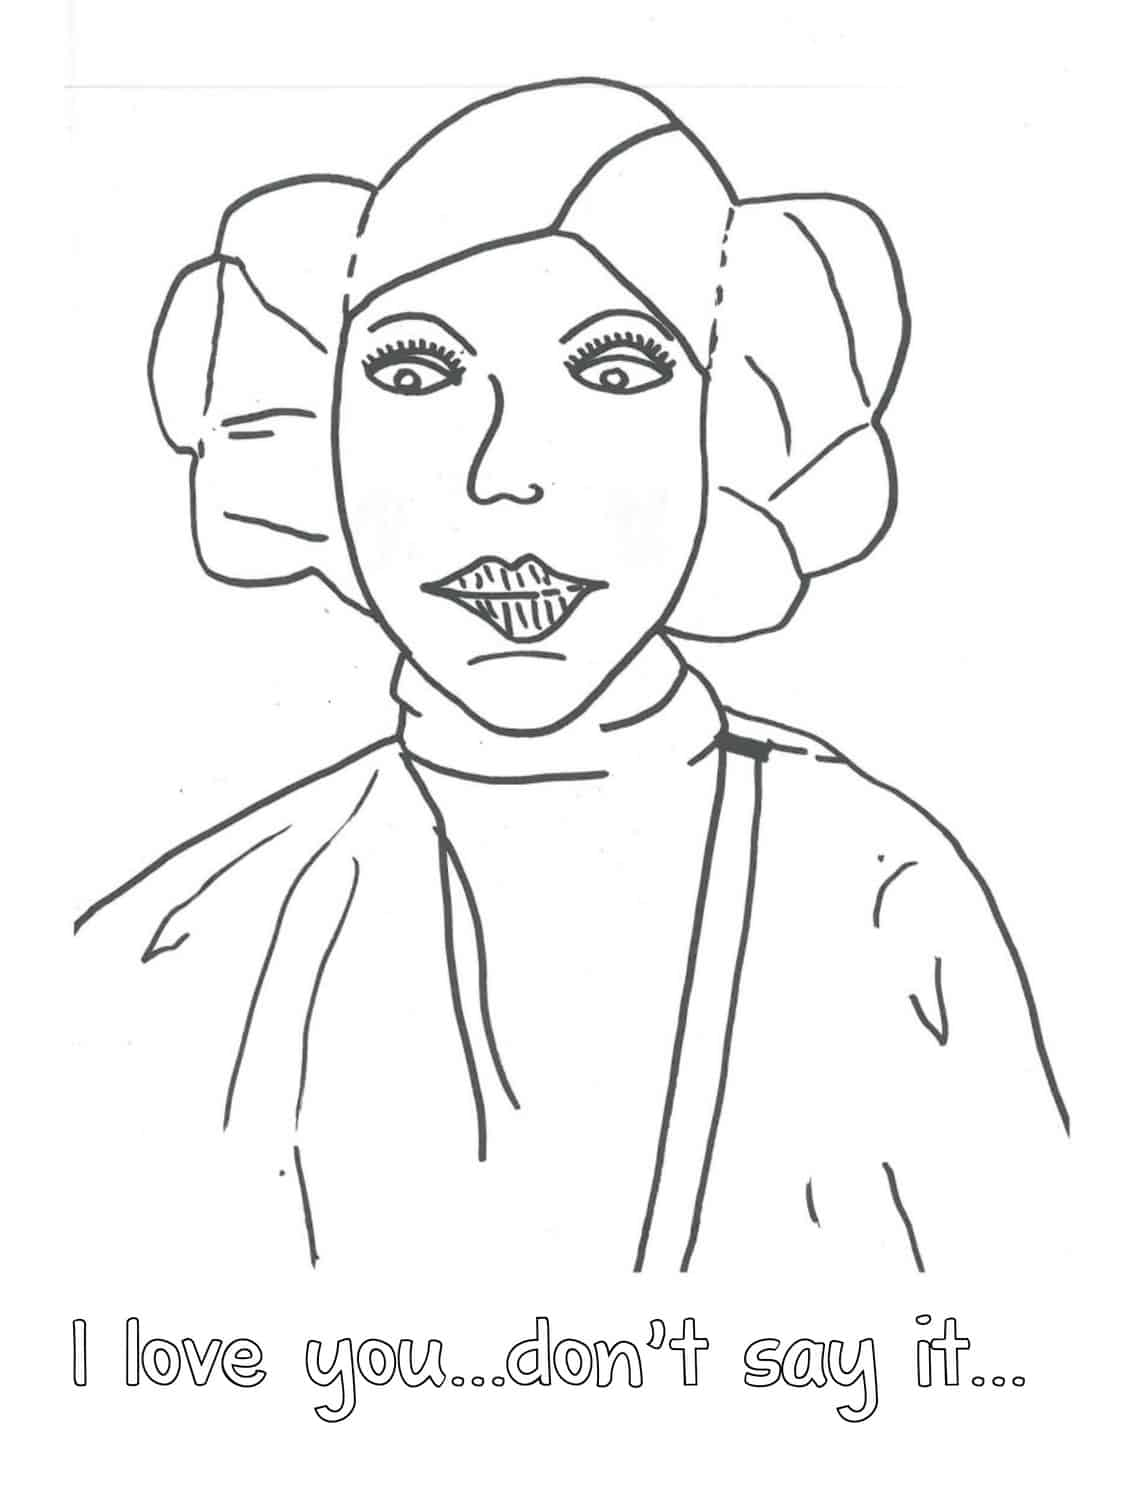 8 More Star Wars Inspired Valentines Coloring Pages